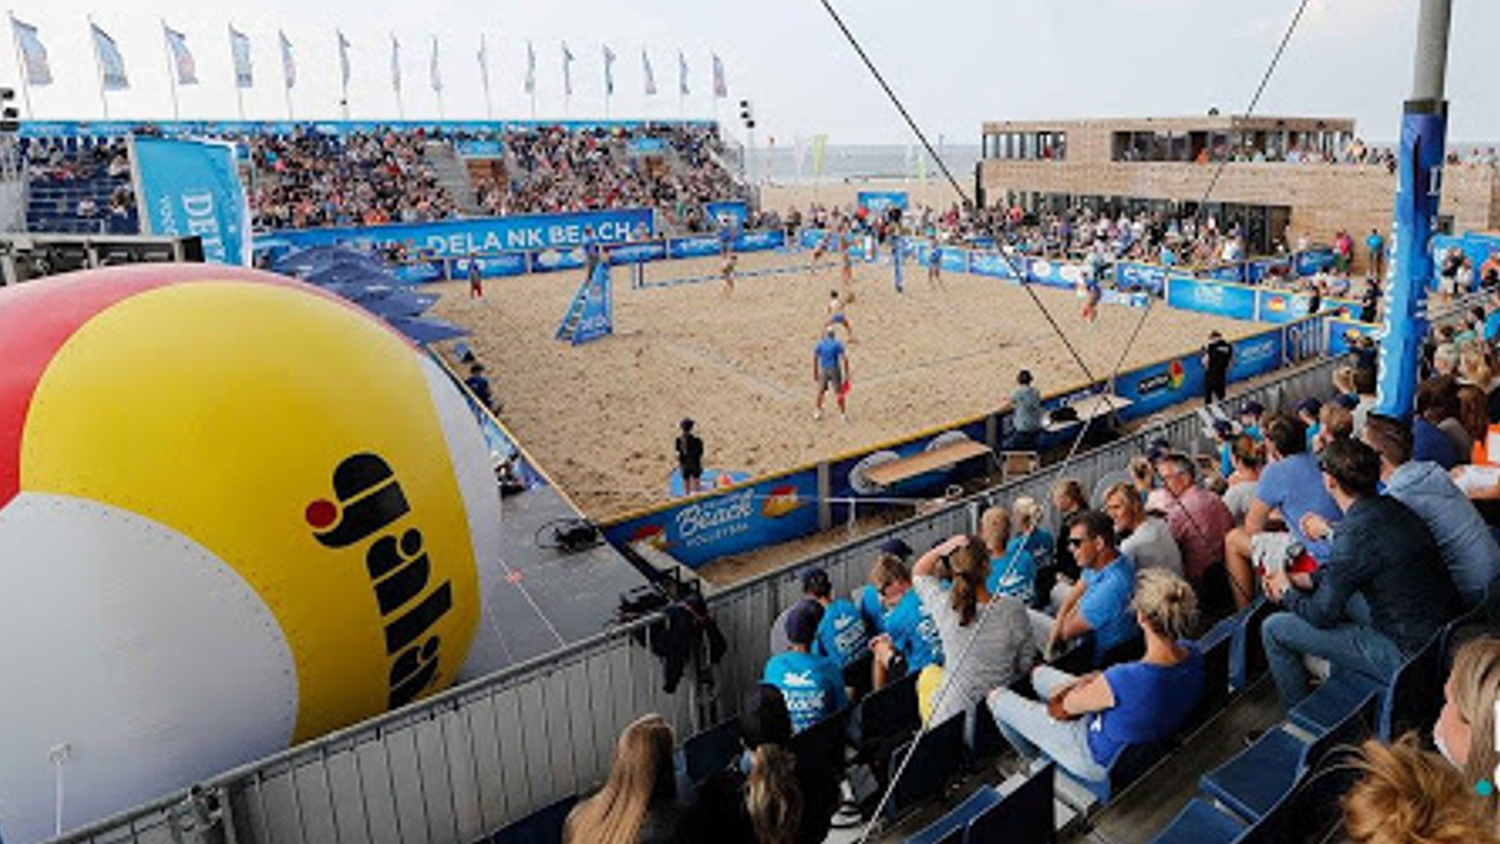 Gala opblaasbare volleybal sportmarketing beach volleyball tournooi – Publiair